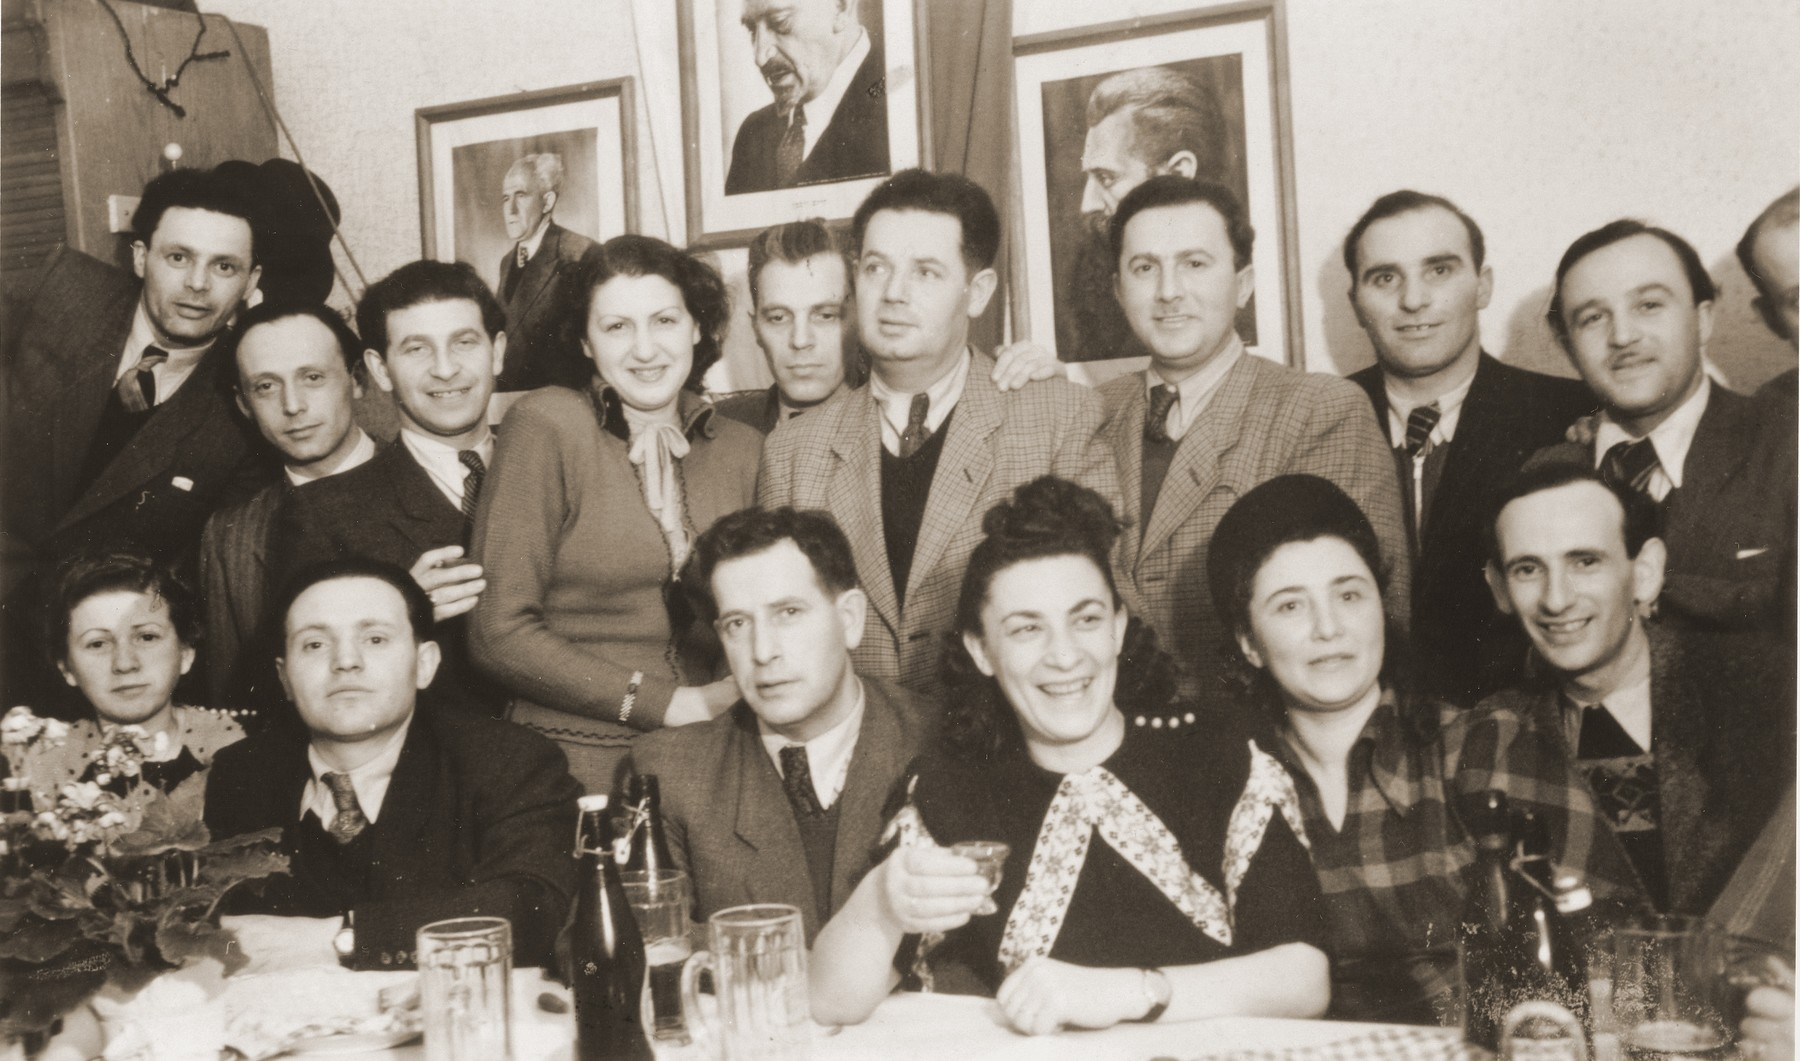 Group portrait of the members of the Betar Zionist youth movement gathered around a table in Fuerth, Germany.  Among those pictured are Manfred Schulman, Henek Schwartzbard, and Henryk Lanceter.